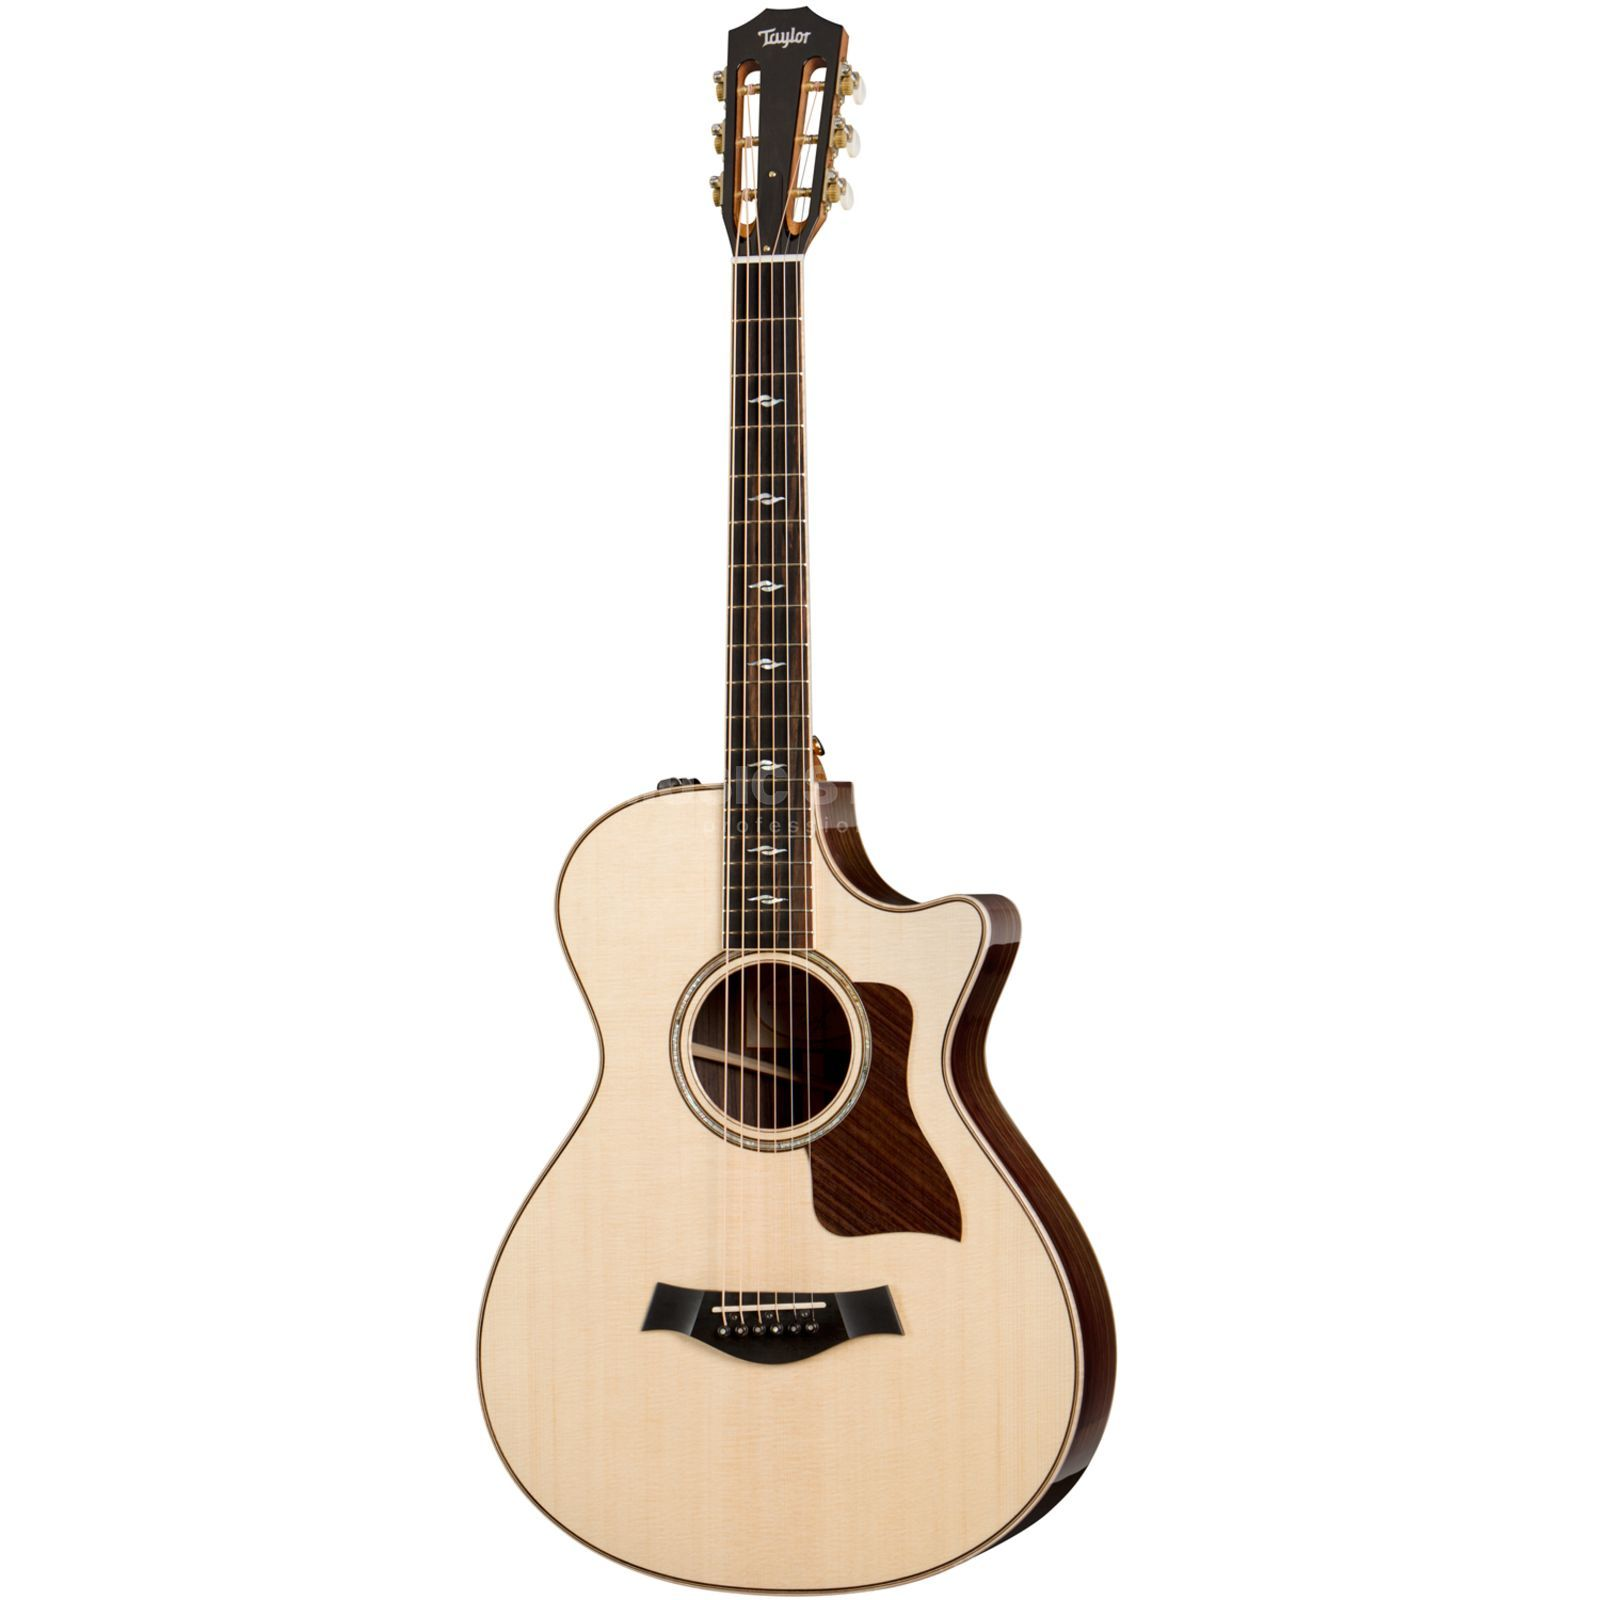 Taylor 812ce 12th fret Grand Concert Natural Produktbild